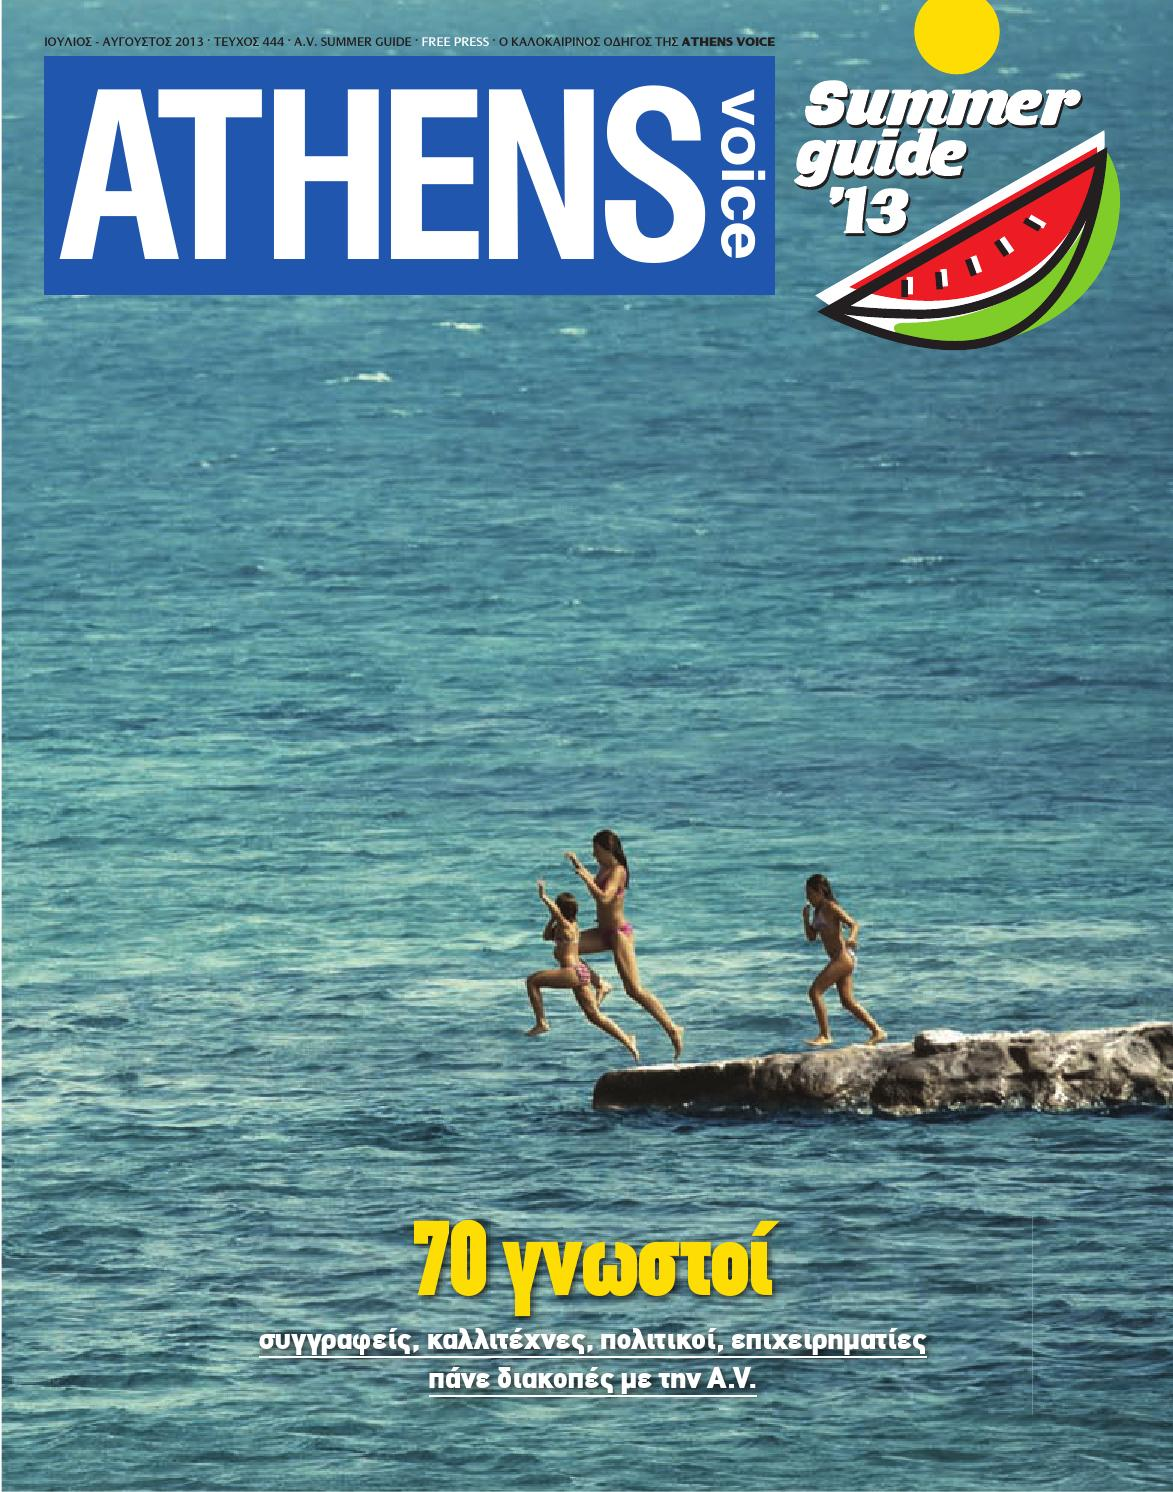 9e5313fc4 Athens Voice Summer Guide 2013 by Athens Voice - issuu